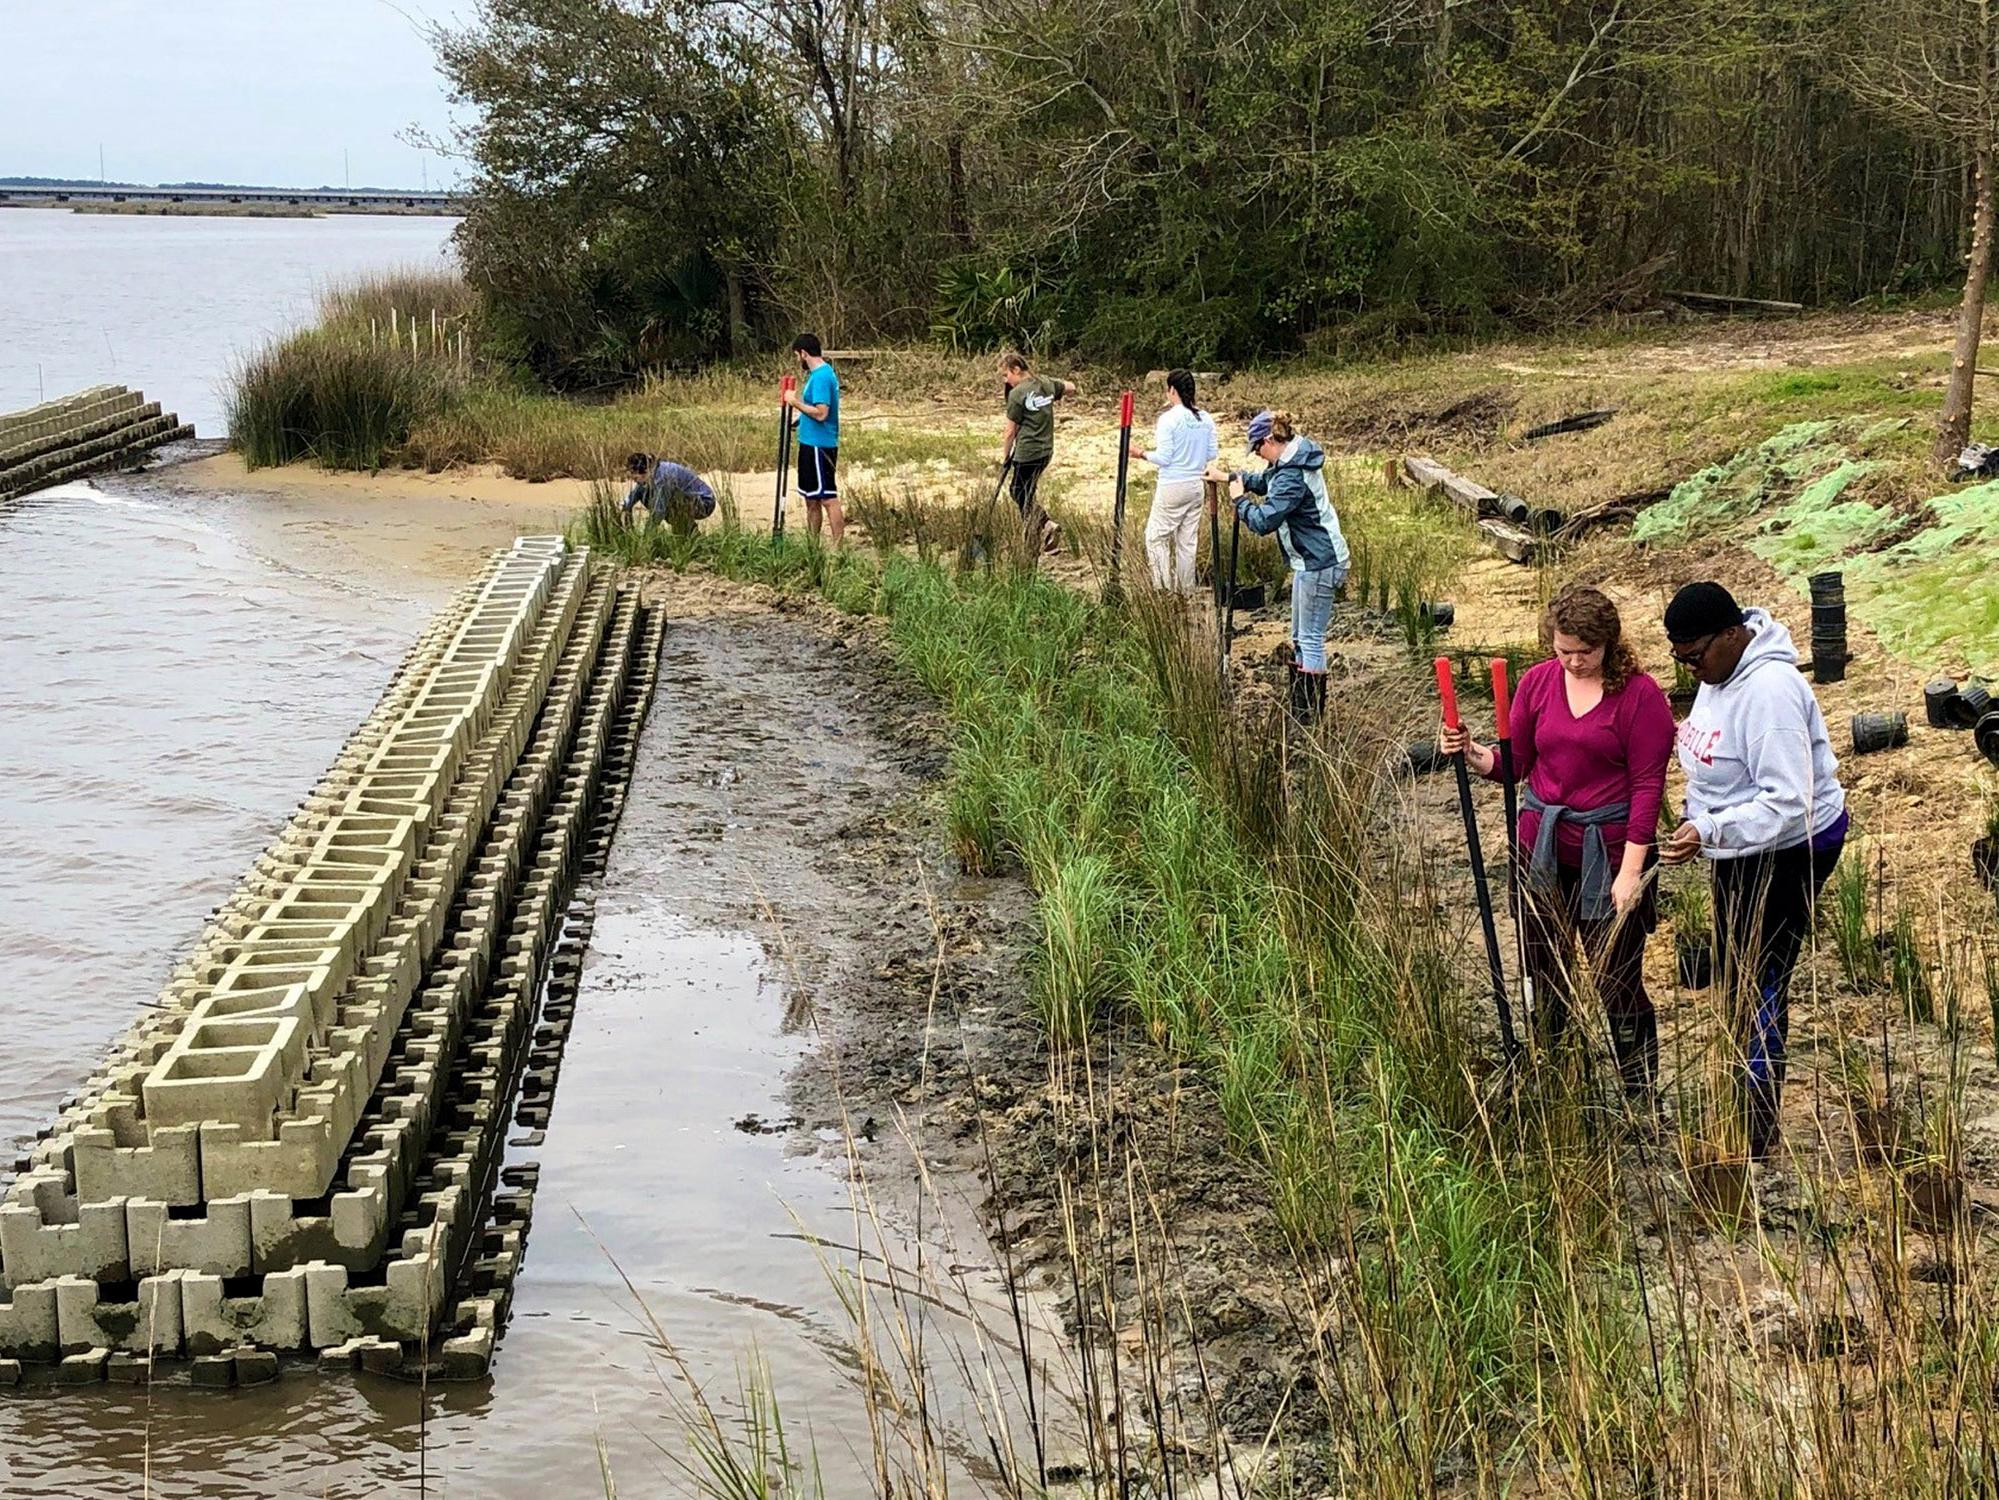 Seven people with garden shovels add grassy plants to a shoreline with large concrete bricks forming a long narrow formation in the water just off the shore.